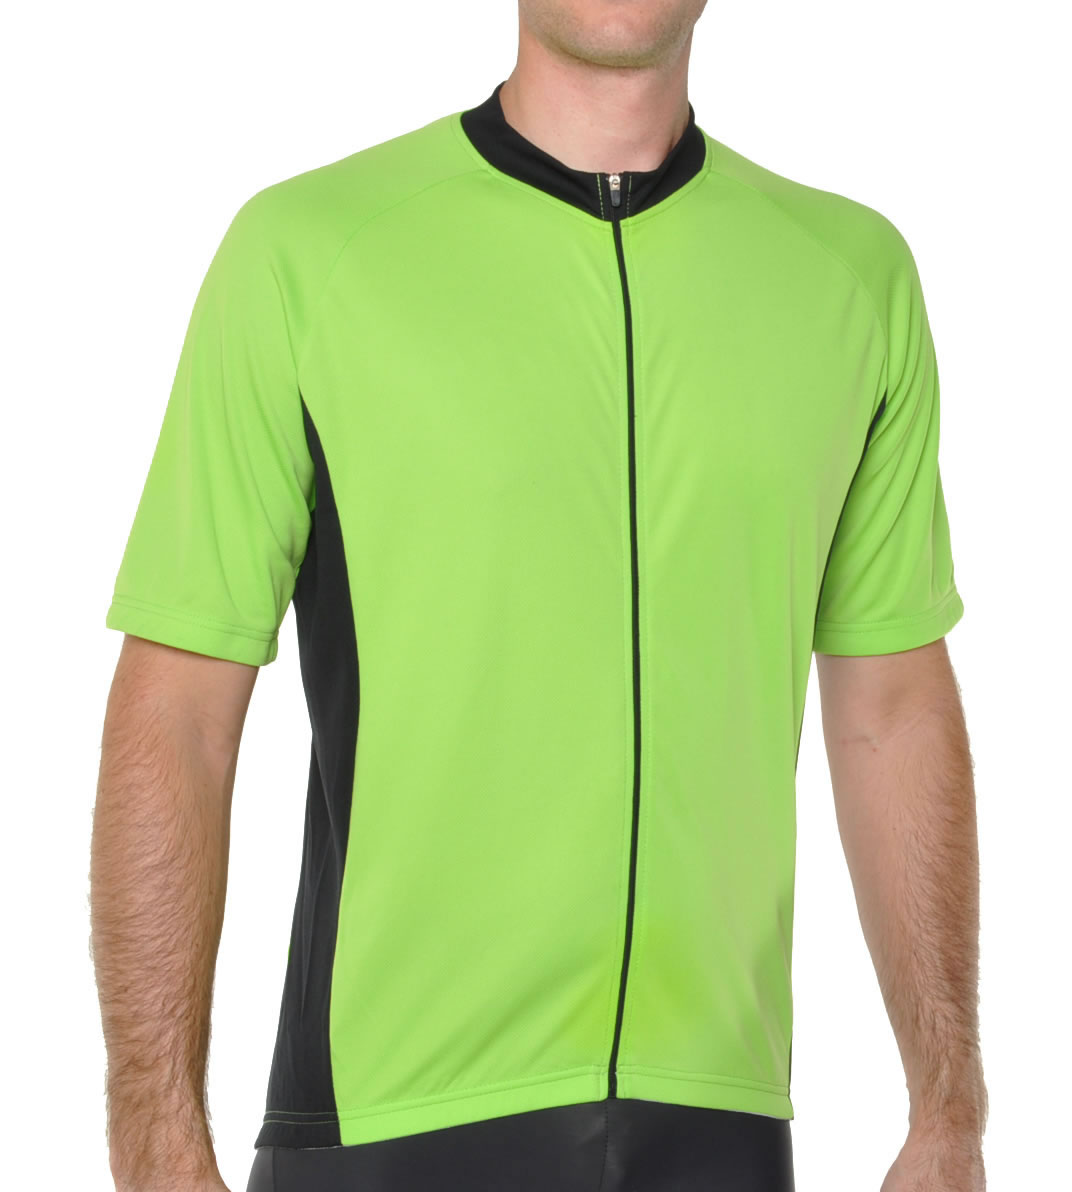 Endurance Short Sleeve Cycling Jersey Road / MTB